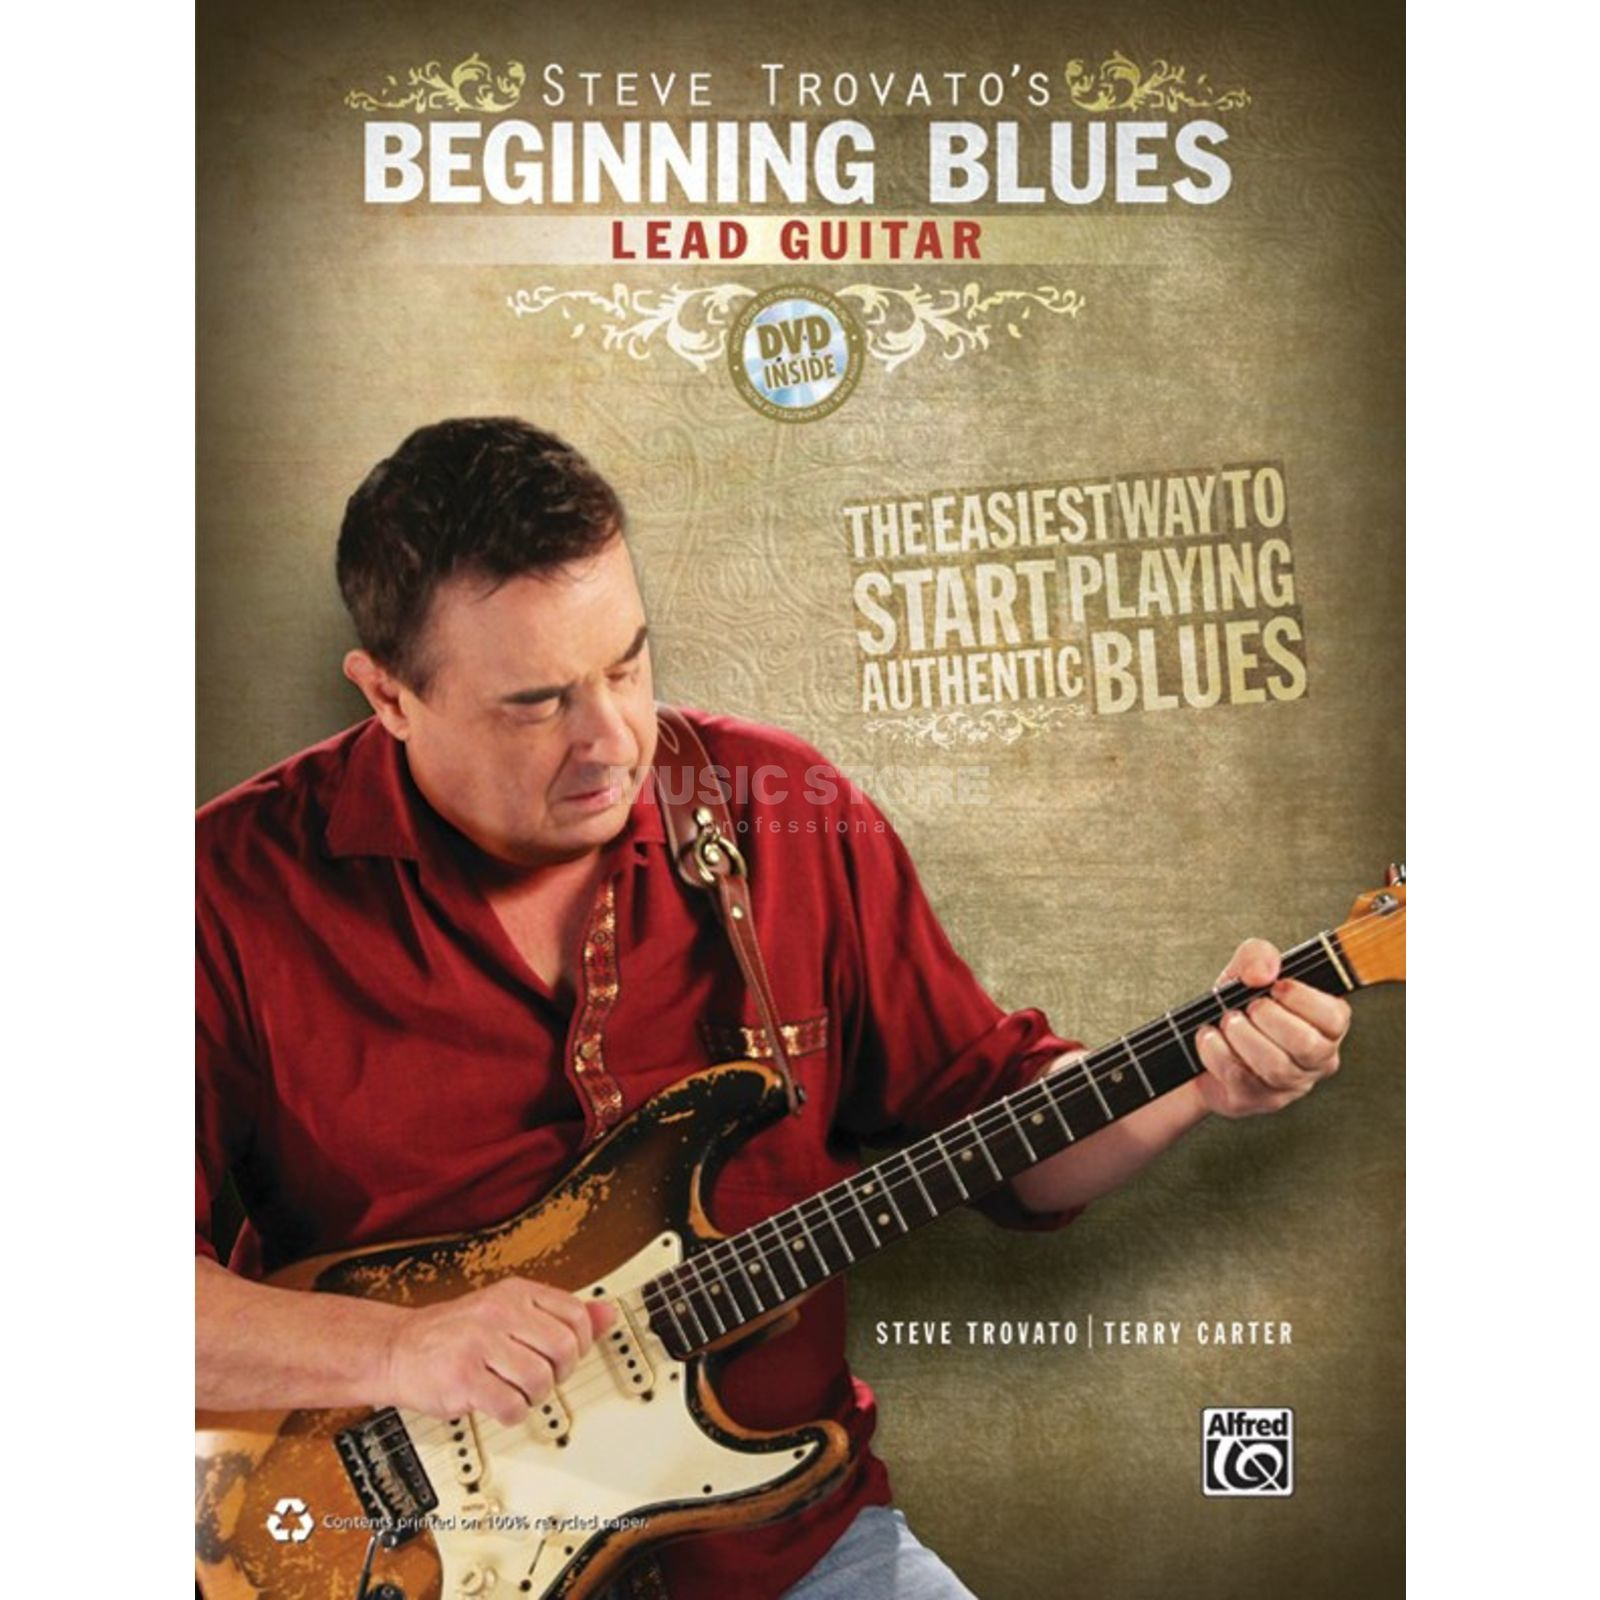 Alfred Music Beginning Blues Lead Guitar Steve Trovato incl. DVD Product Image